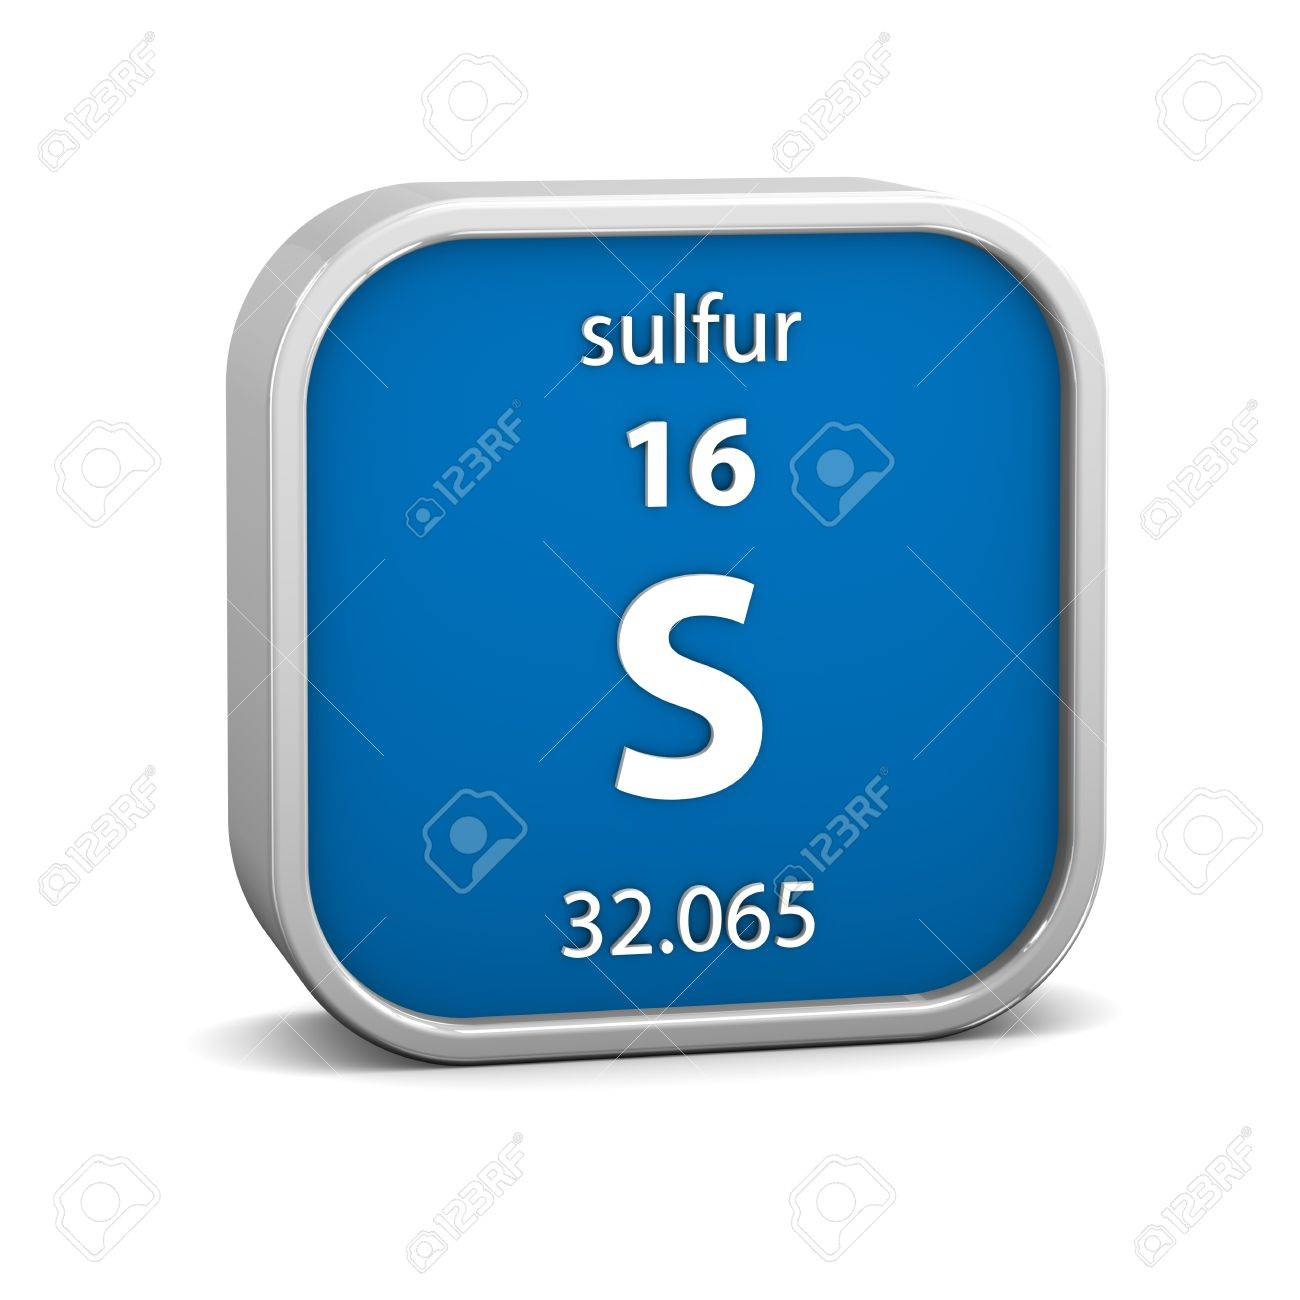 Sulfur Material On The Periodic Table Part Of A Series Stock Photo